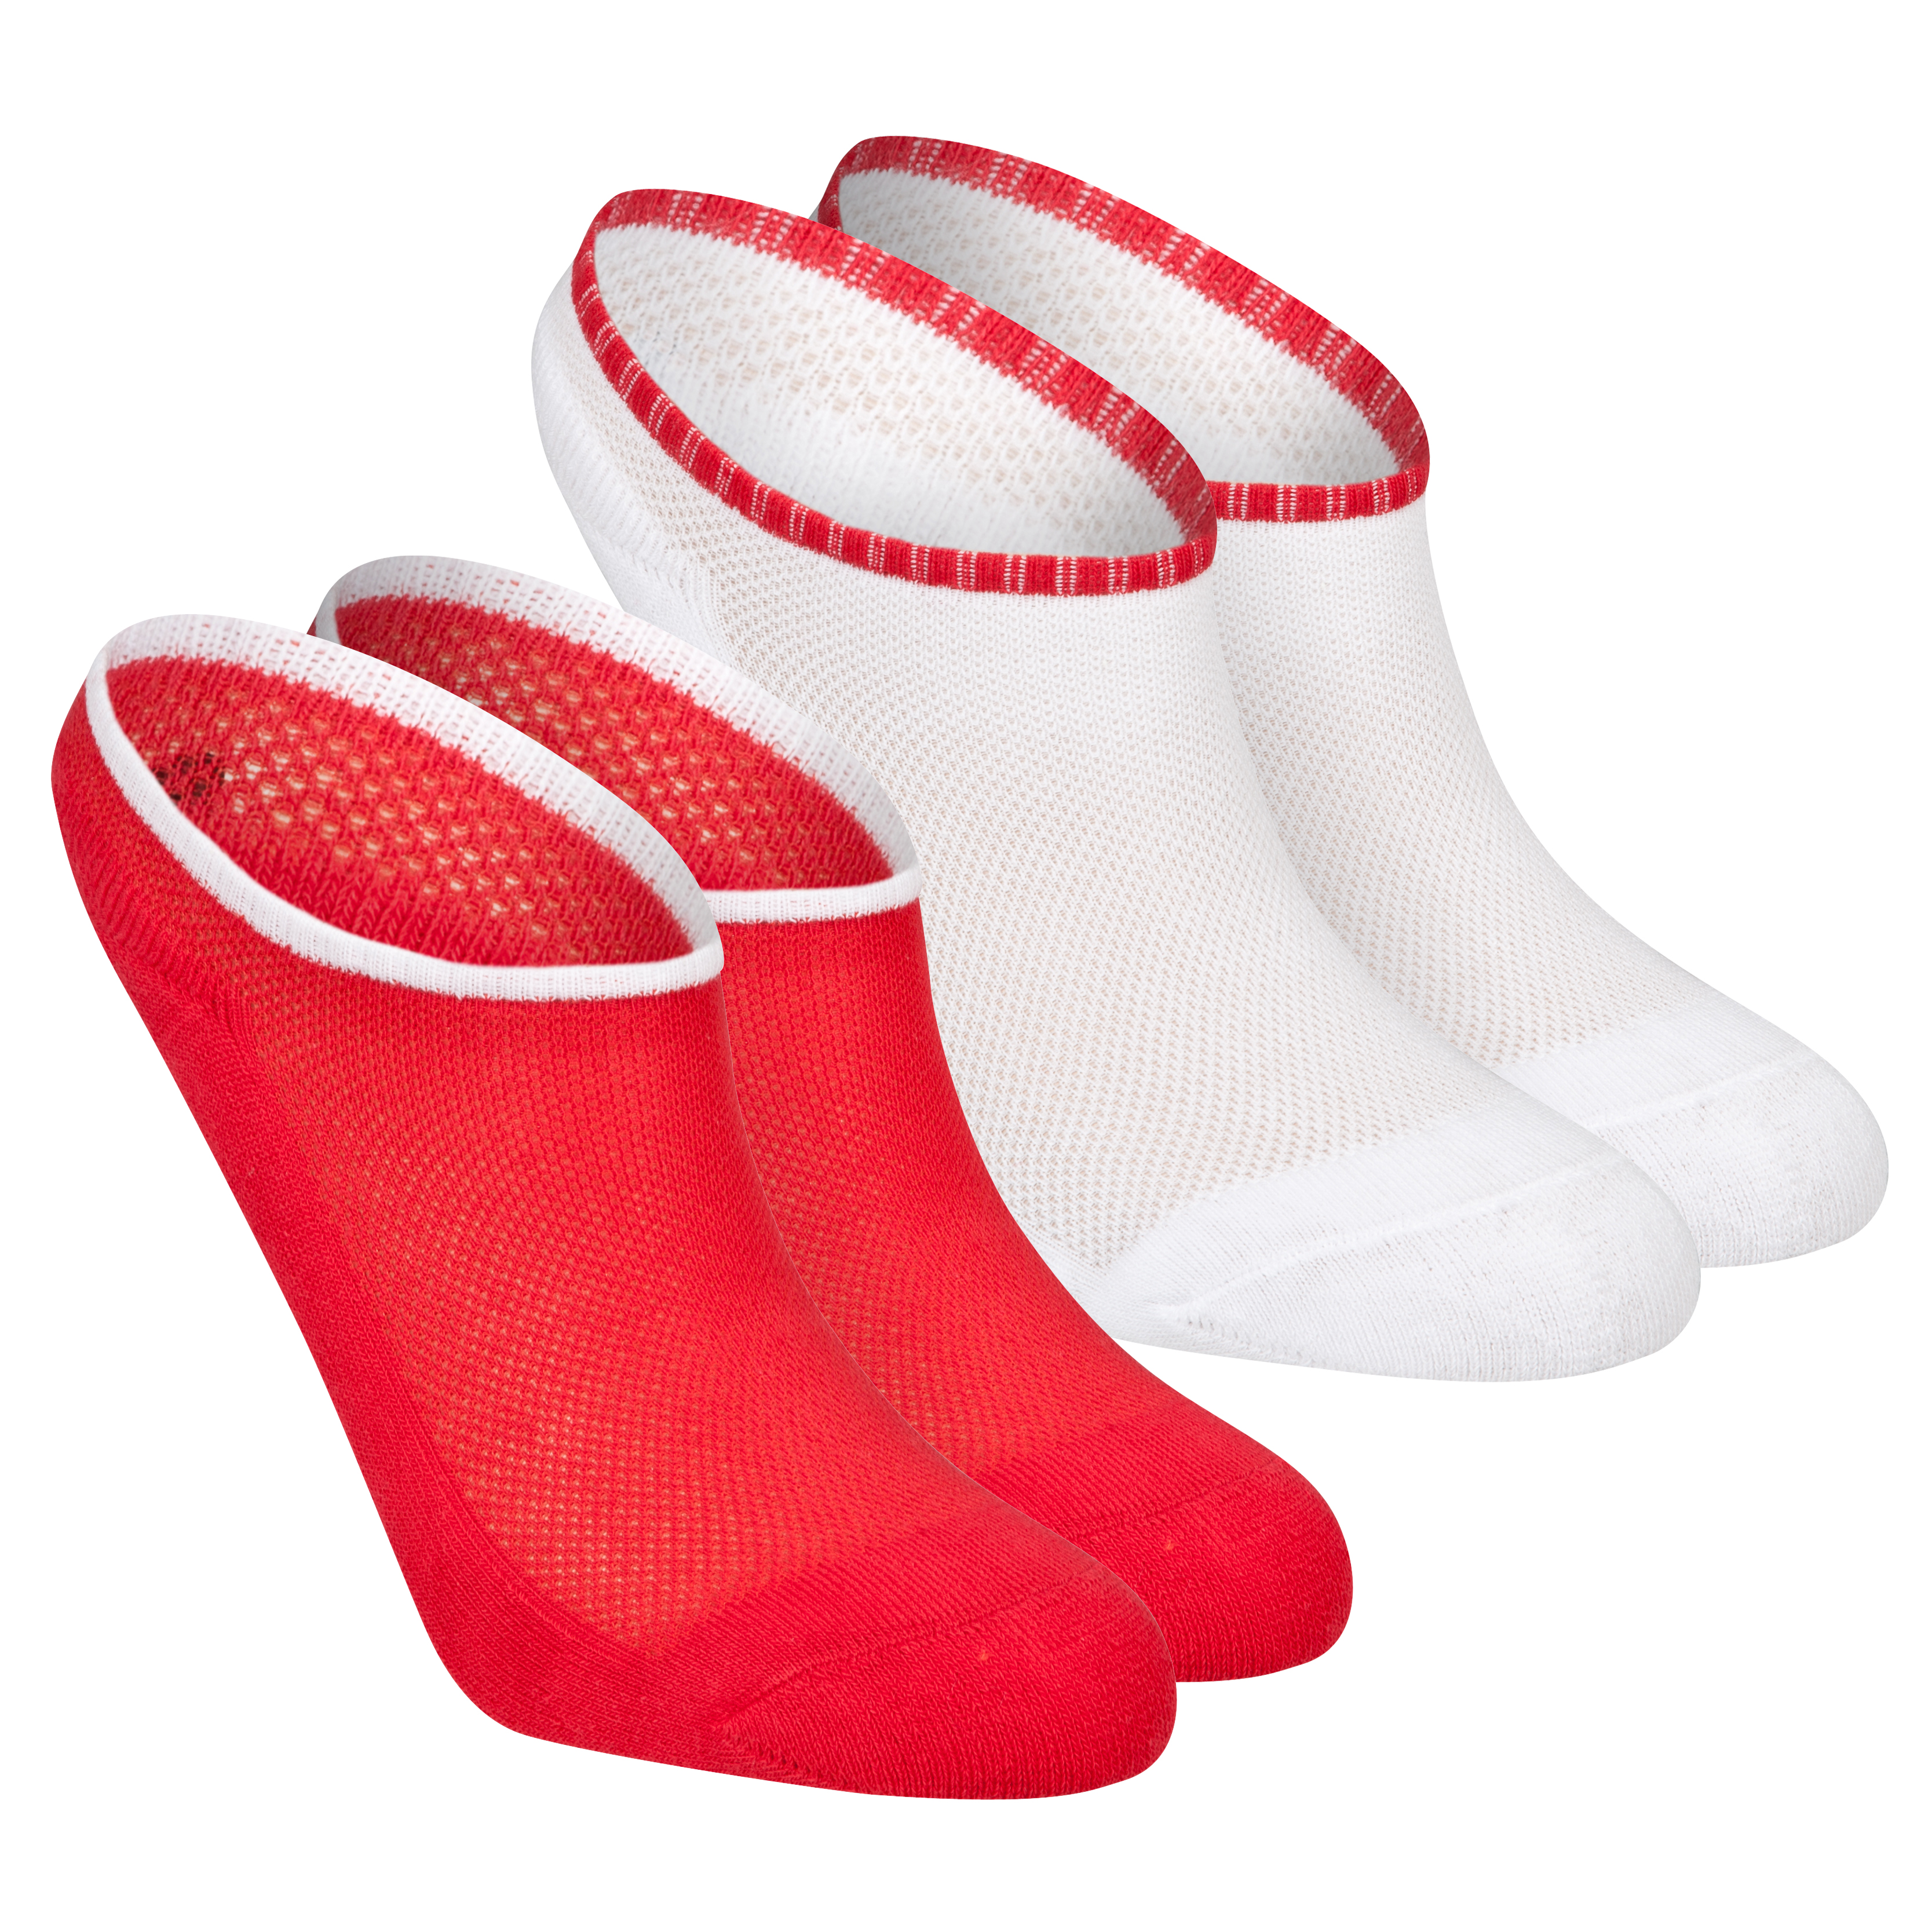 Roland-Garros 2 Pack of Core Ankle Socks - White/Red -35-38